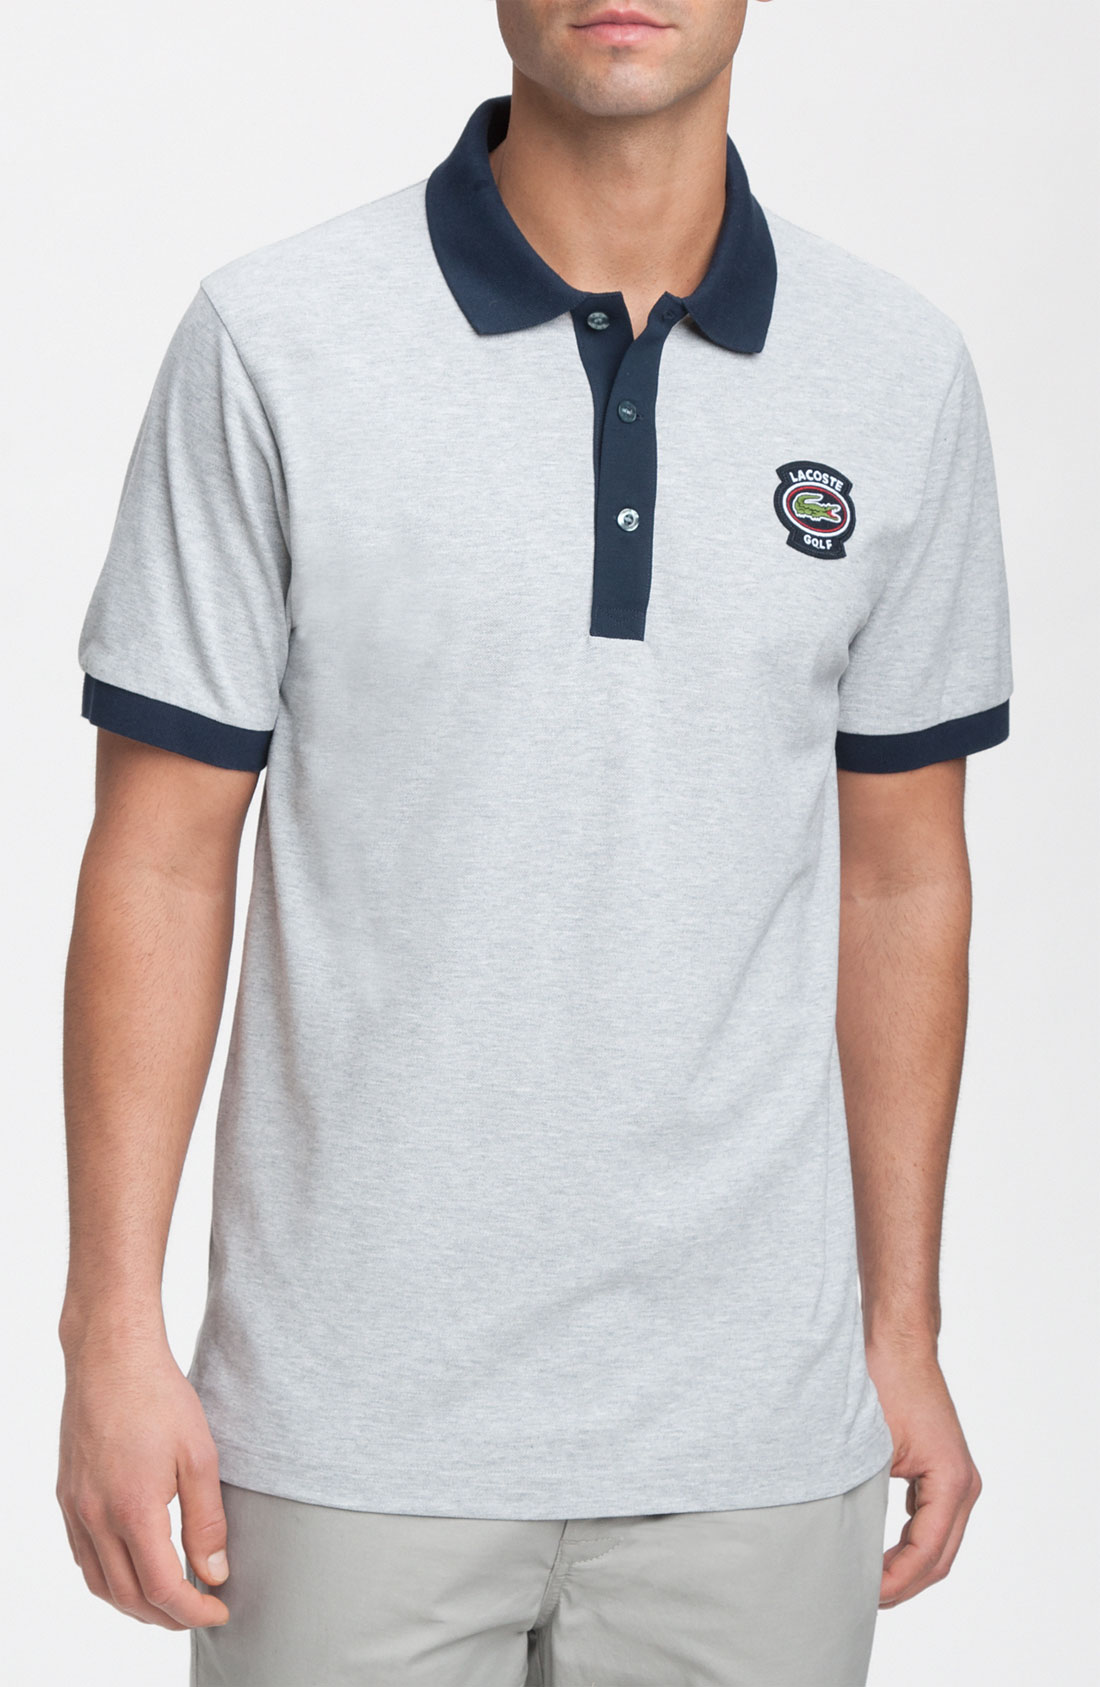 lacoste golf polo shirt in gray for men lyst